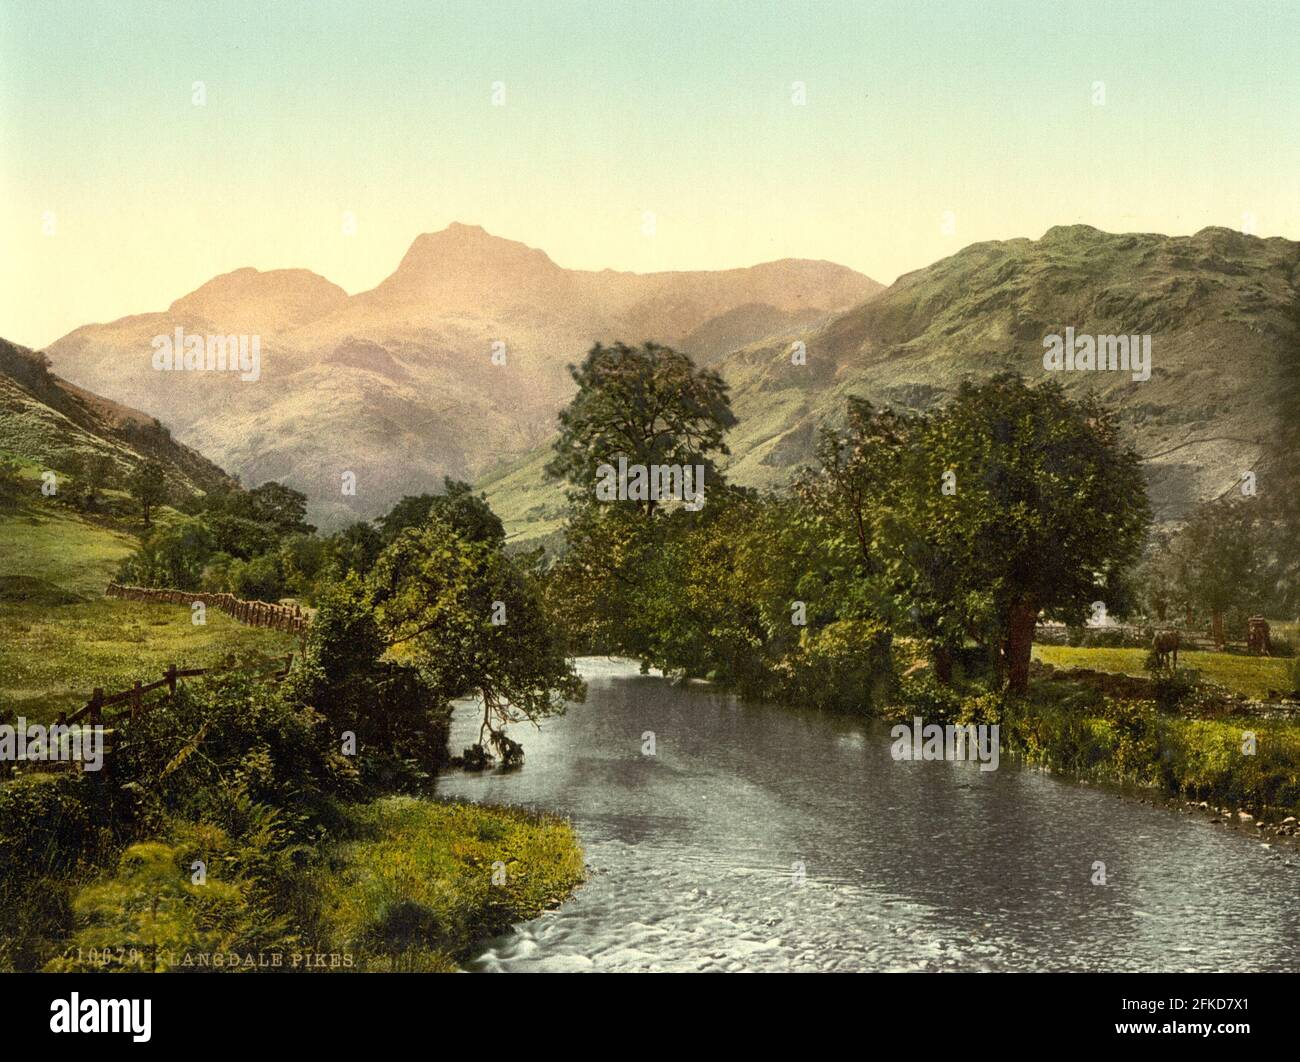 The River Brathay and the Langdale Pikes in The Lake District, Cumbria circa 1890-1900 Stock Photo